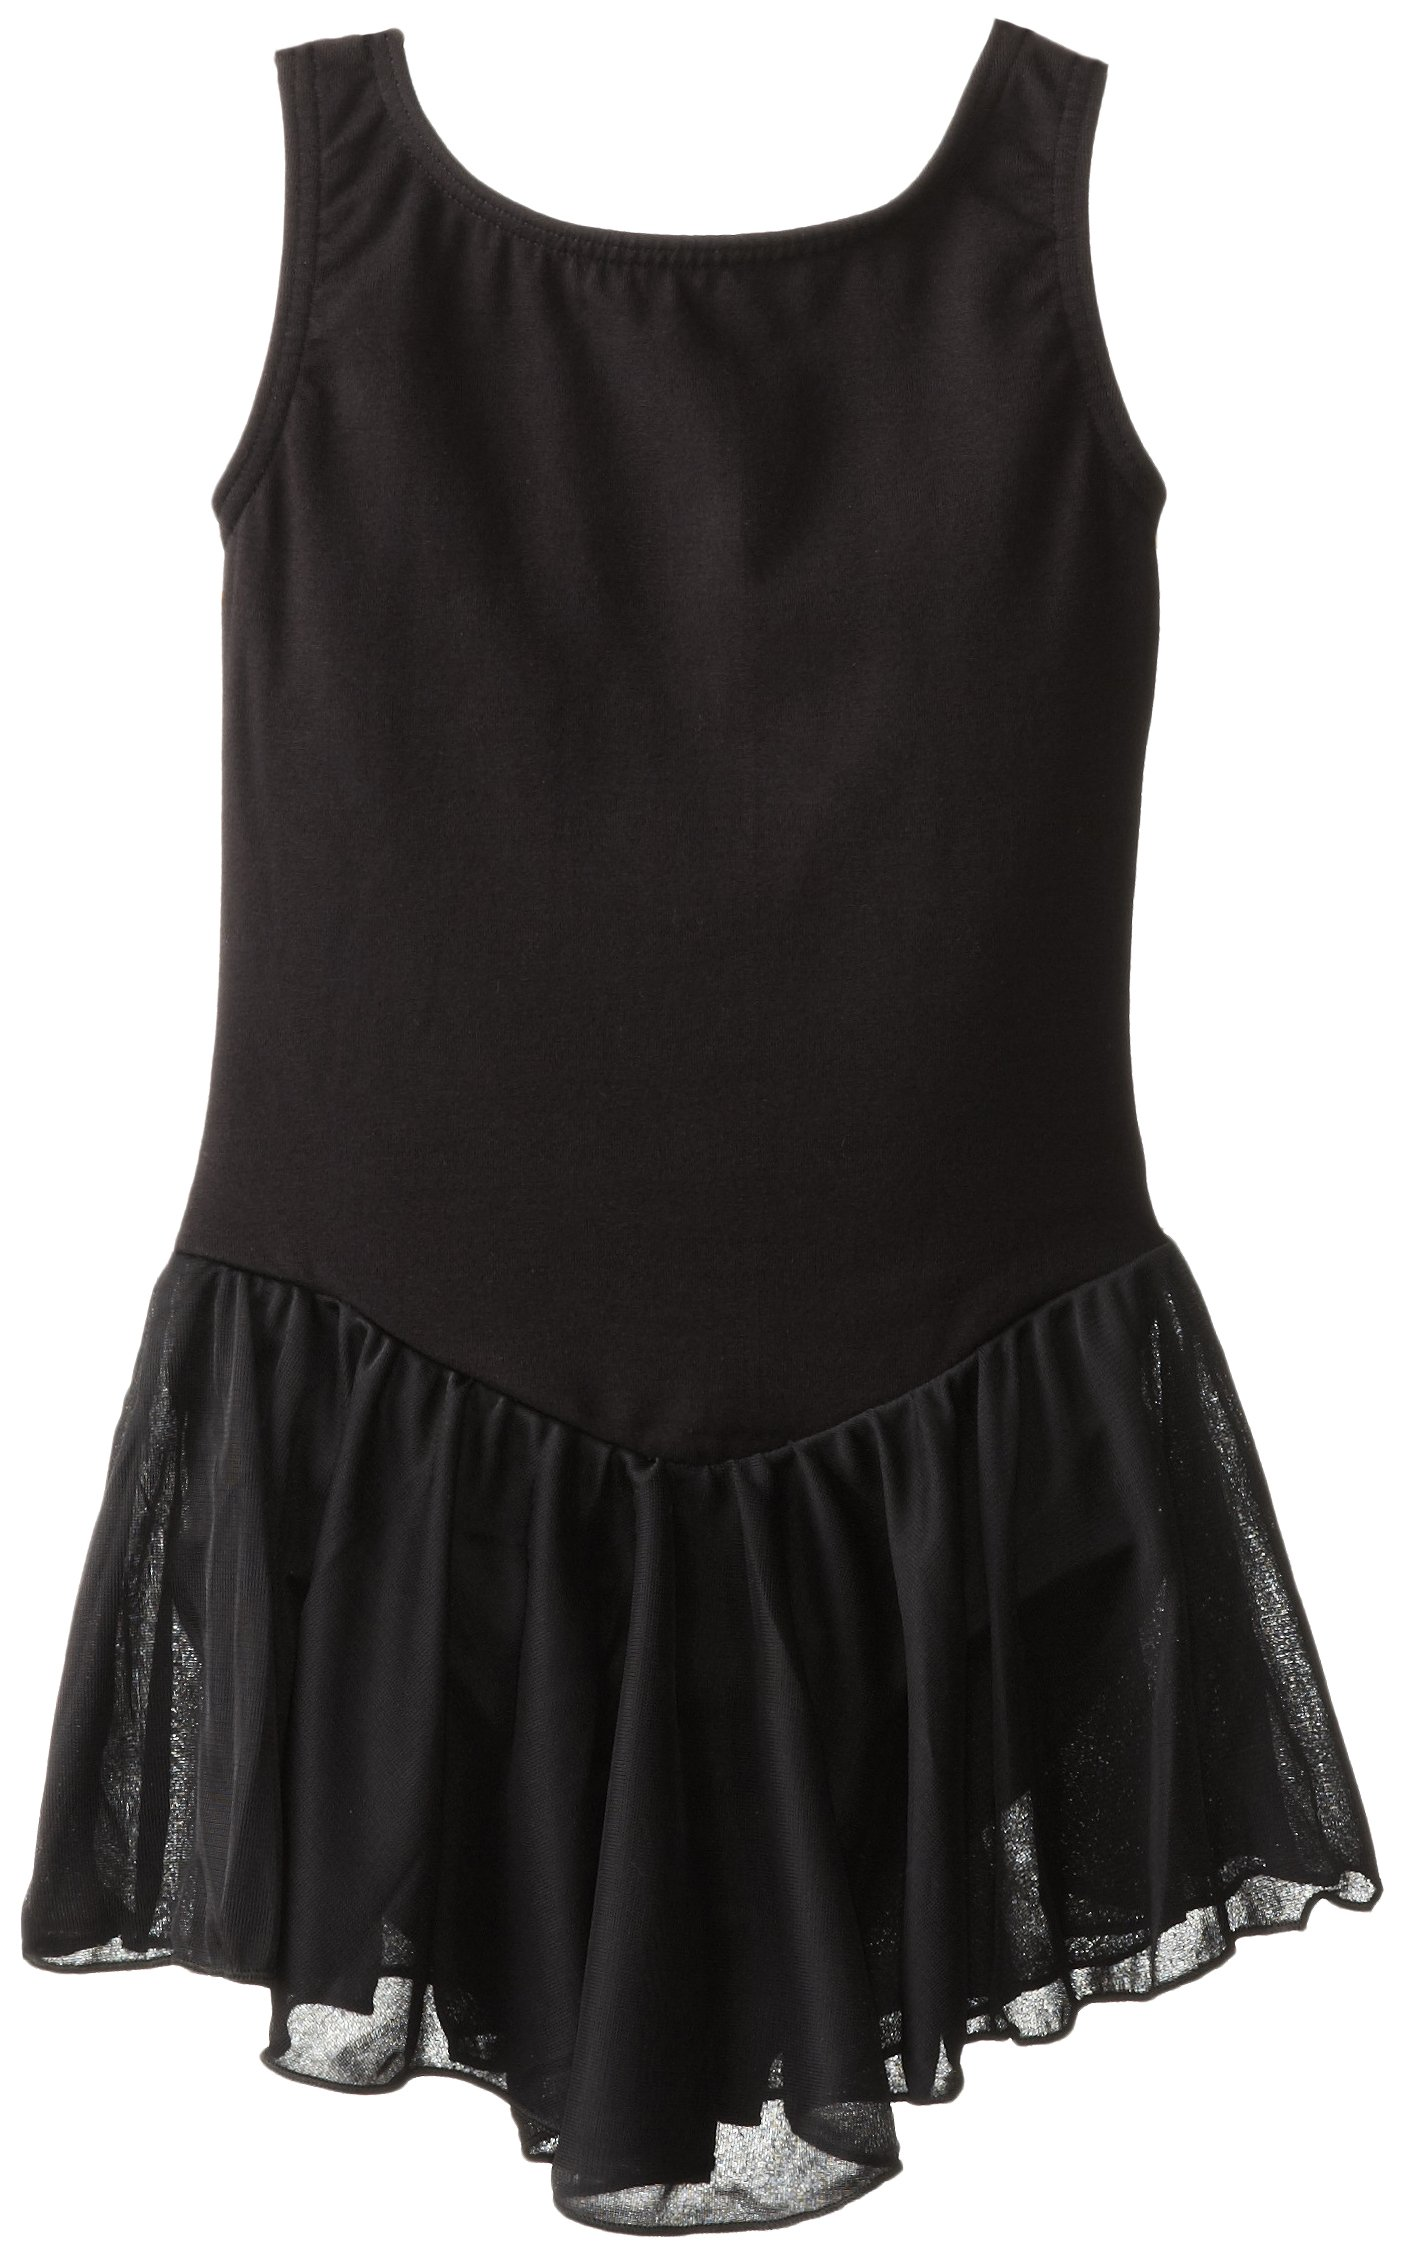 Clementine Girl's 2-6X Girls Leotard Dress, Black, 12/14 by Clementine Apparel (Image #1)